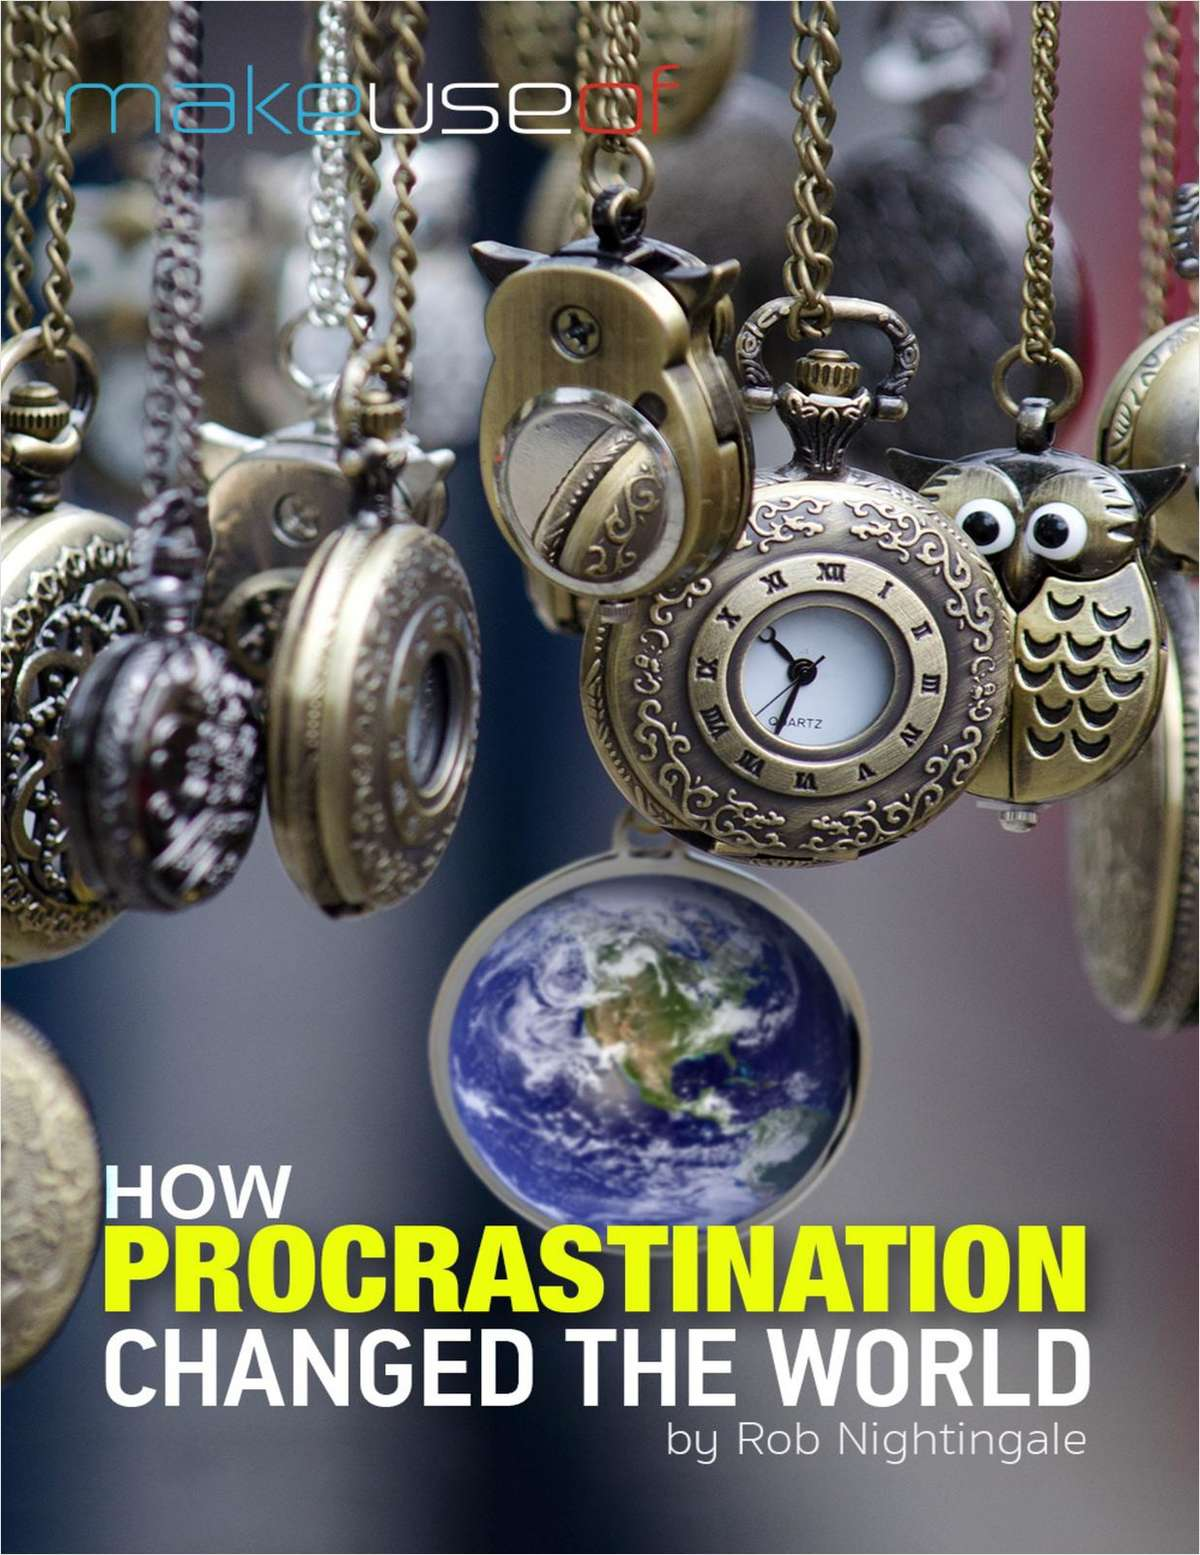 How Procrastination Changed the World